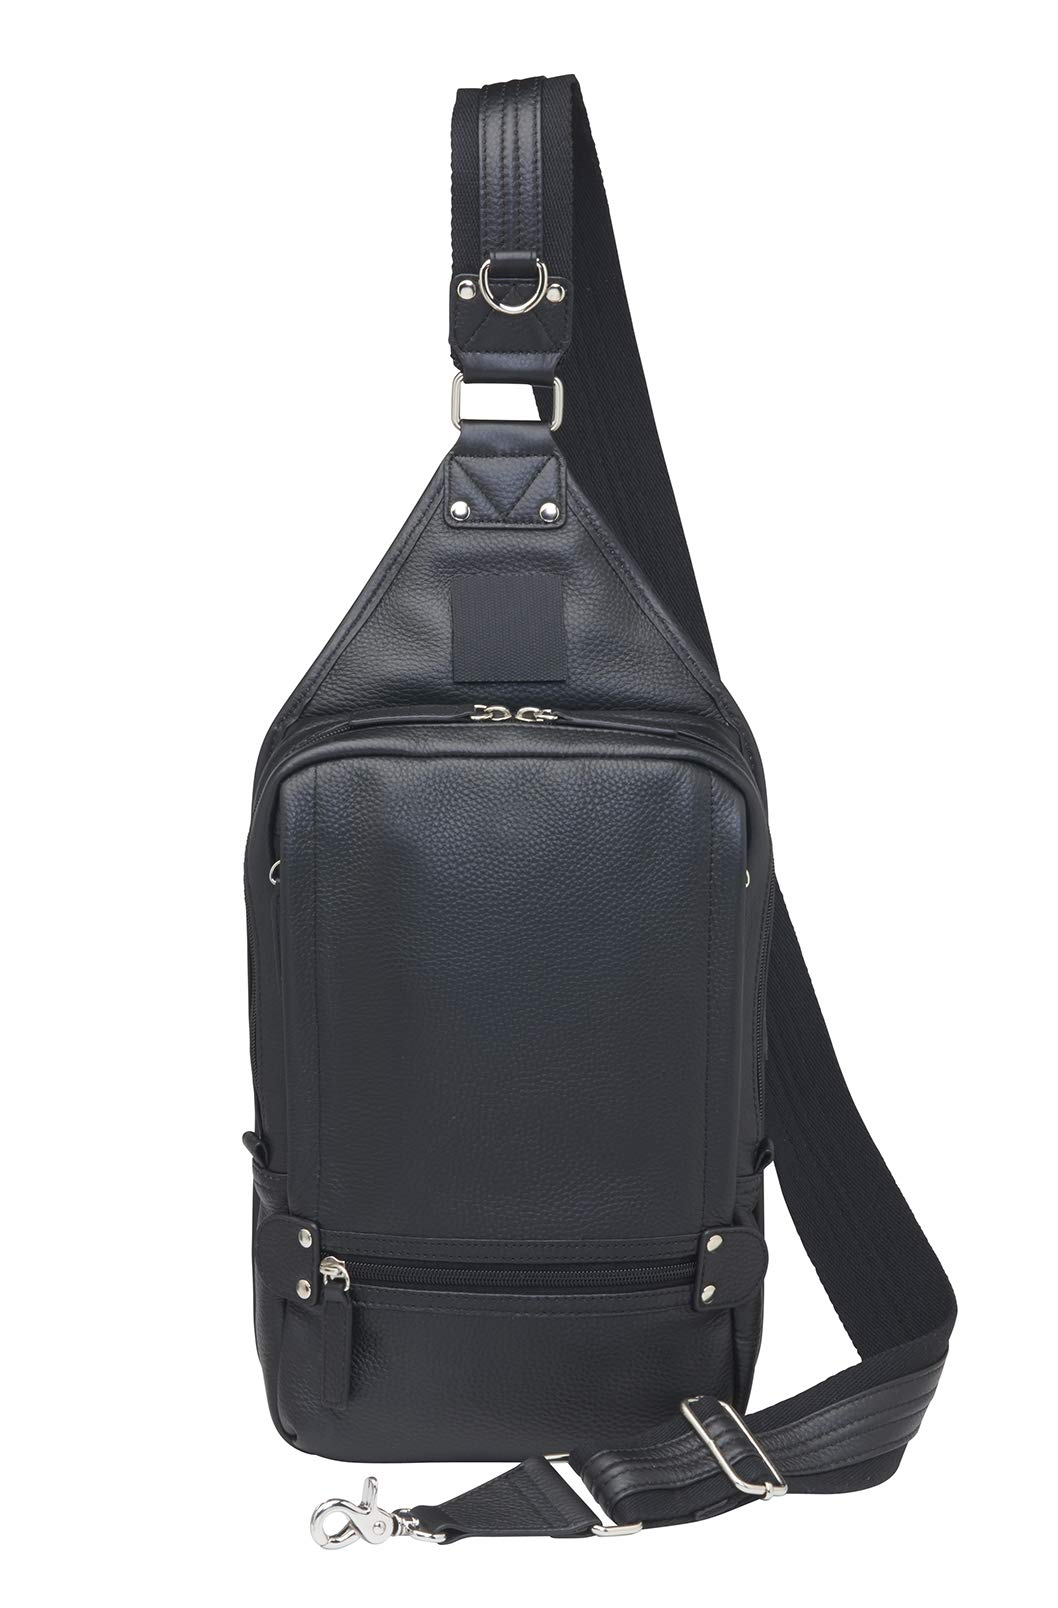 Concealed Carry Purse - Concealment Sling Backpack by Gun Tote'n Mamas